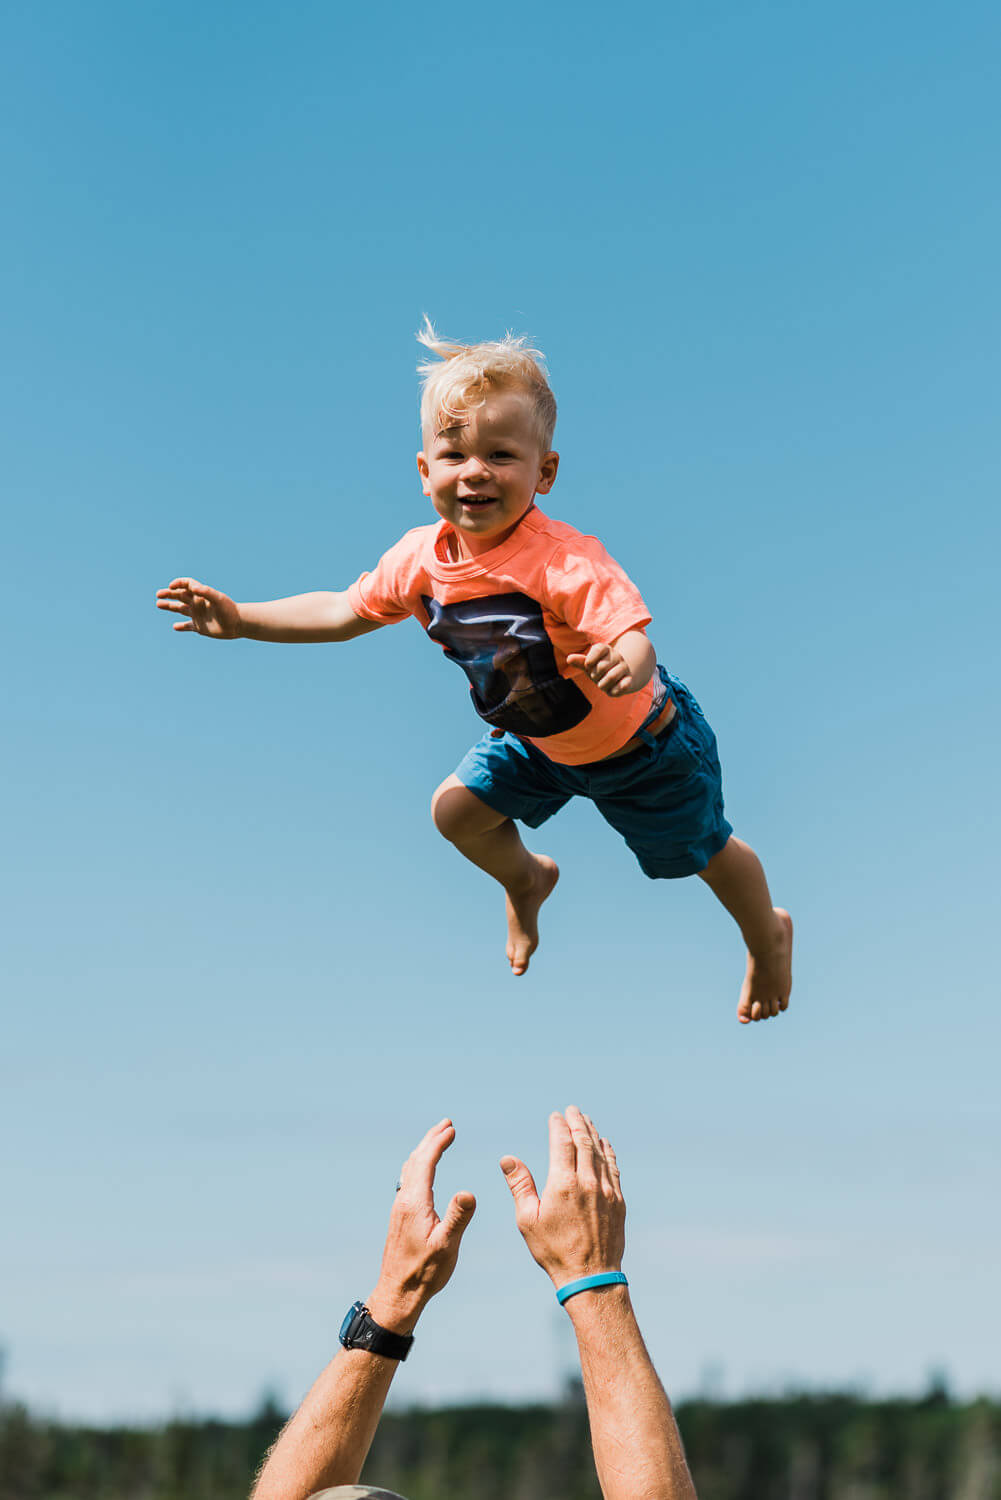 Boy laughing while his father throws him up in the air